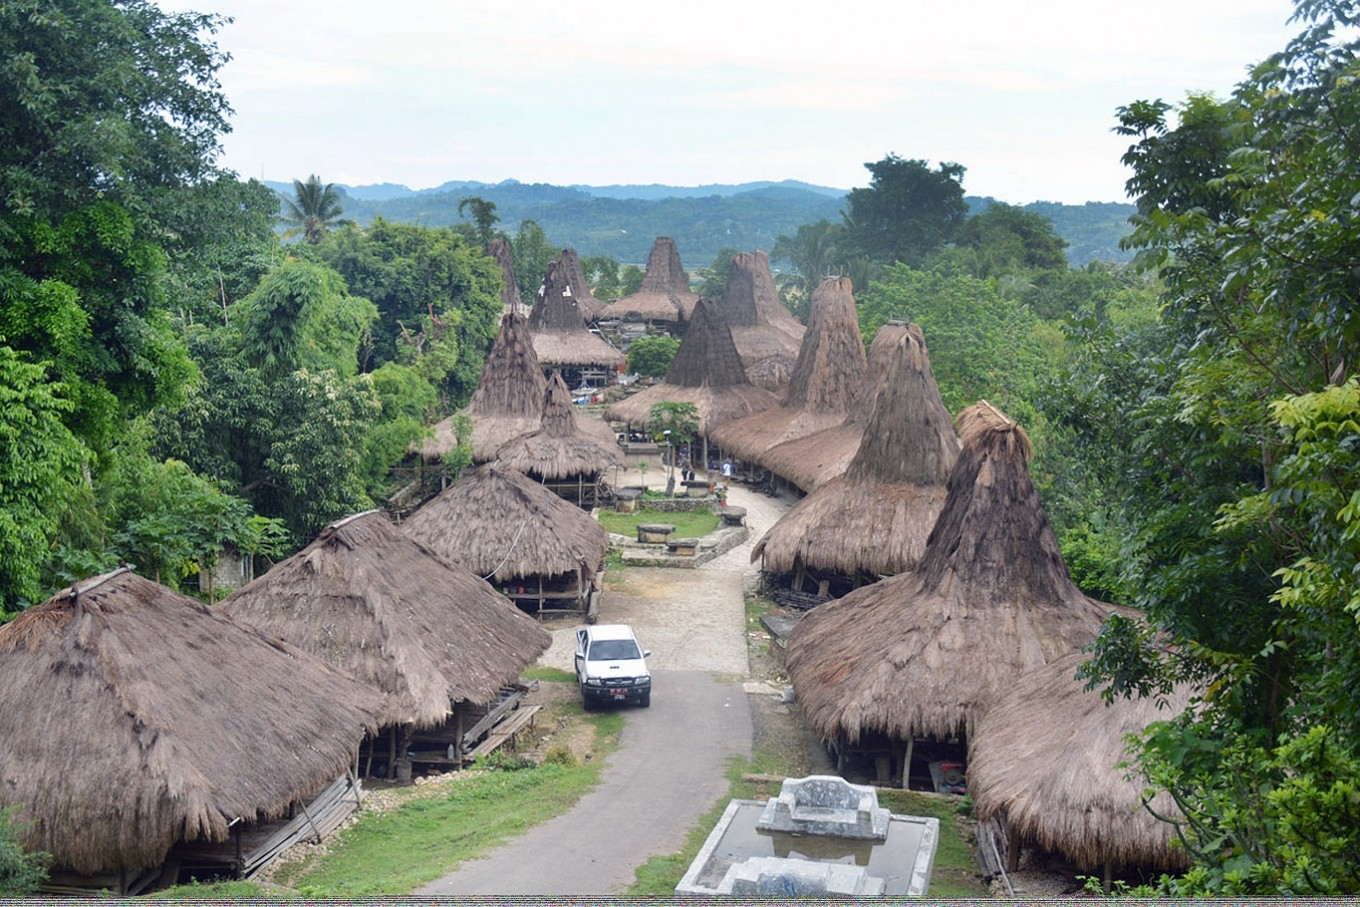 Exploring Sumba Island's natural and cultural riches